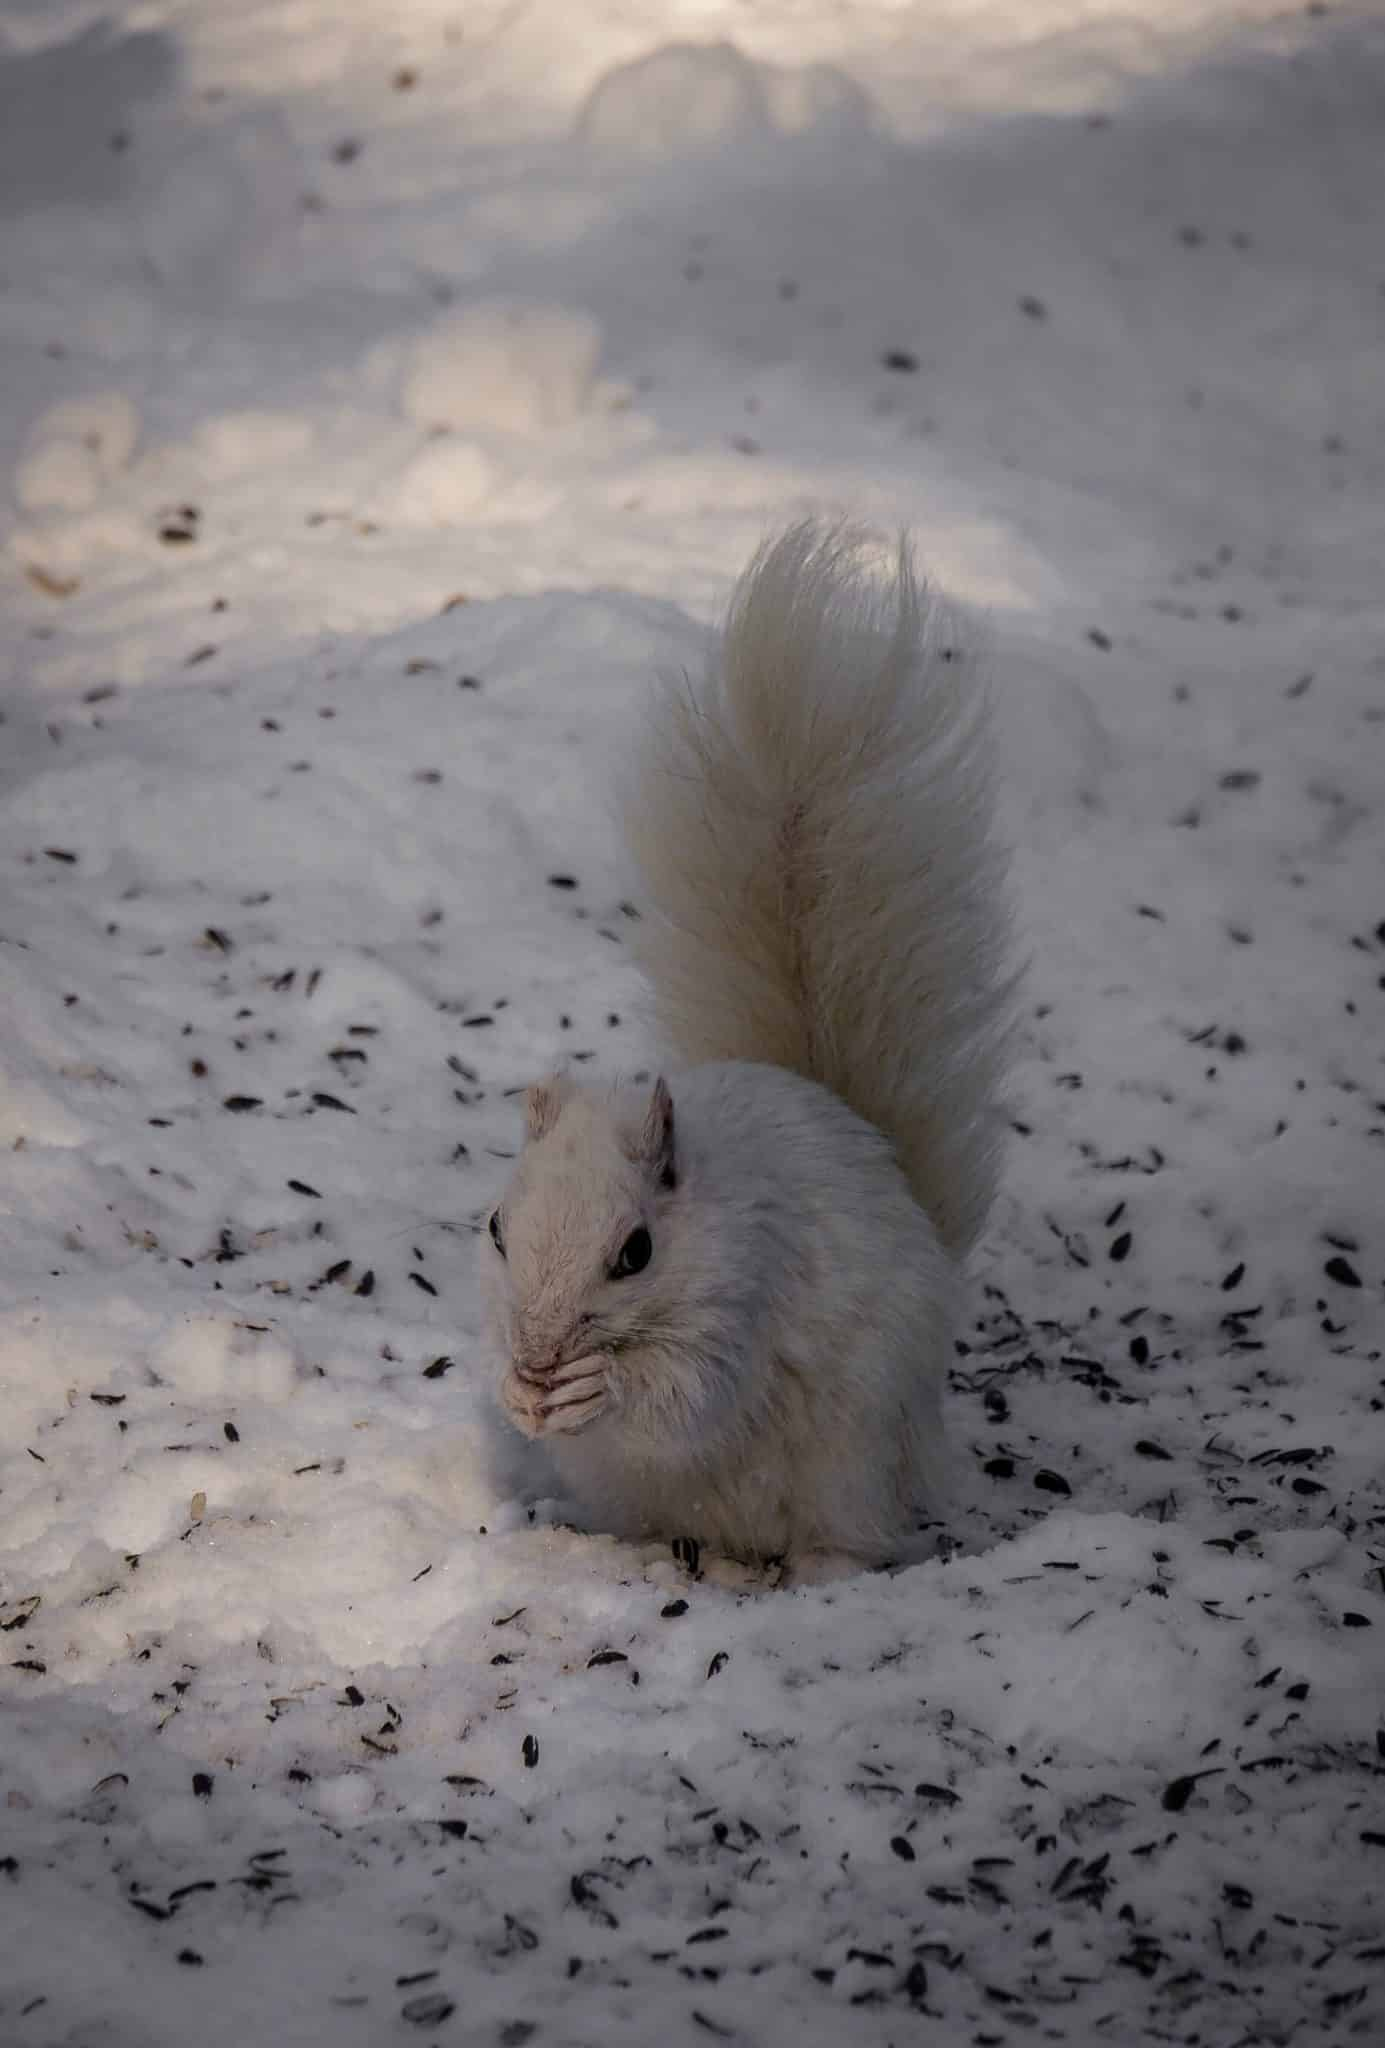 White squirrel in the snow